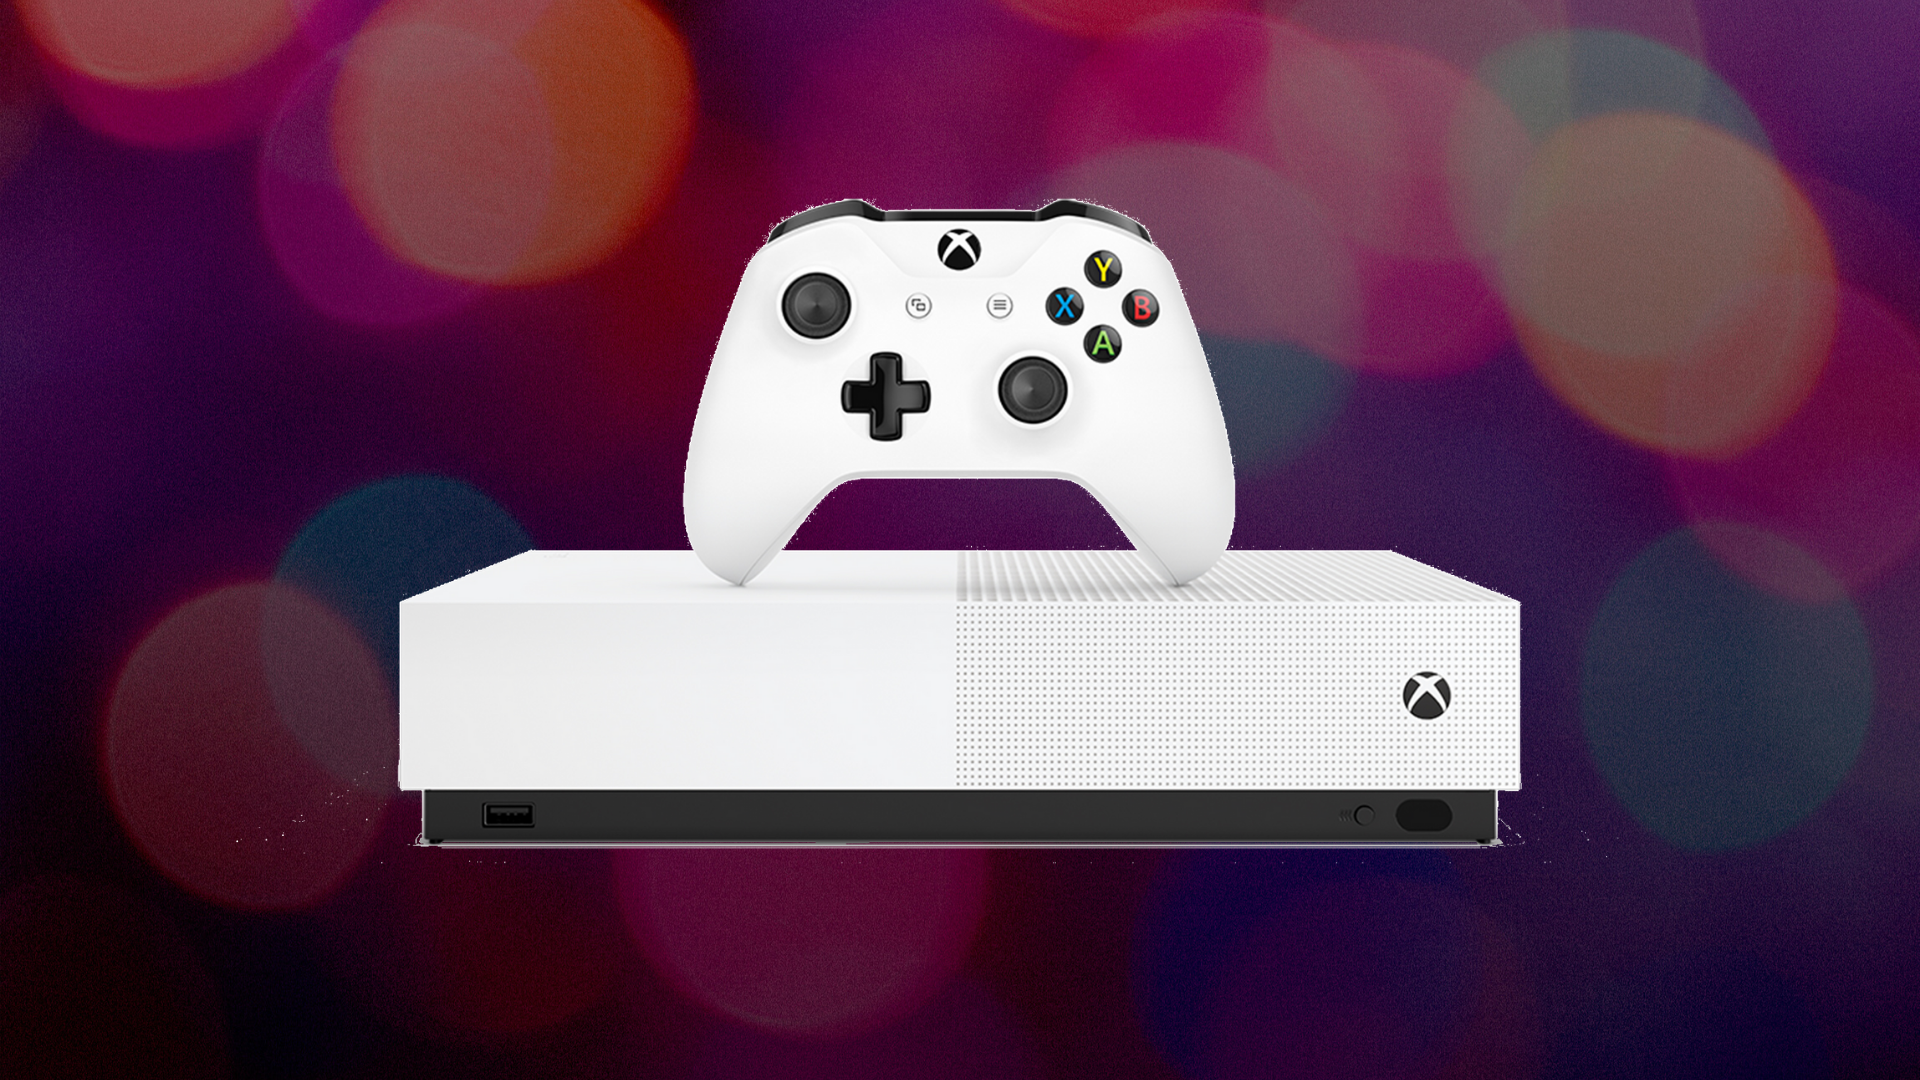 The Xbox One S: All-Digital Edition is the lowest price we've even seen — get yours for just $150